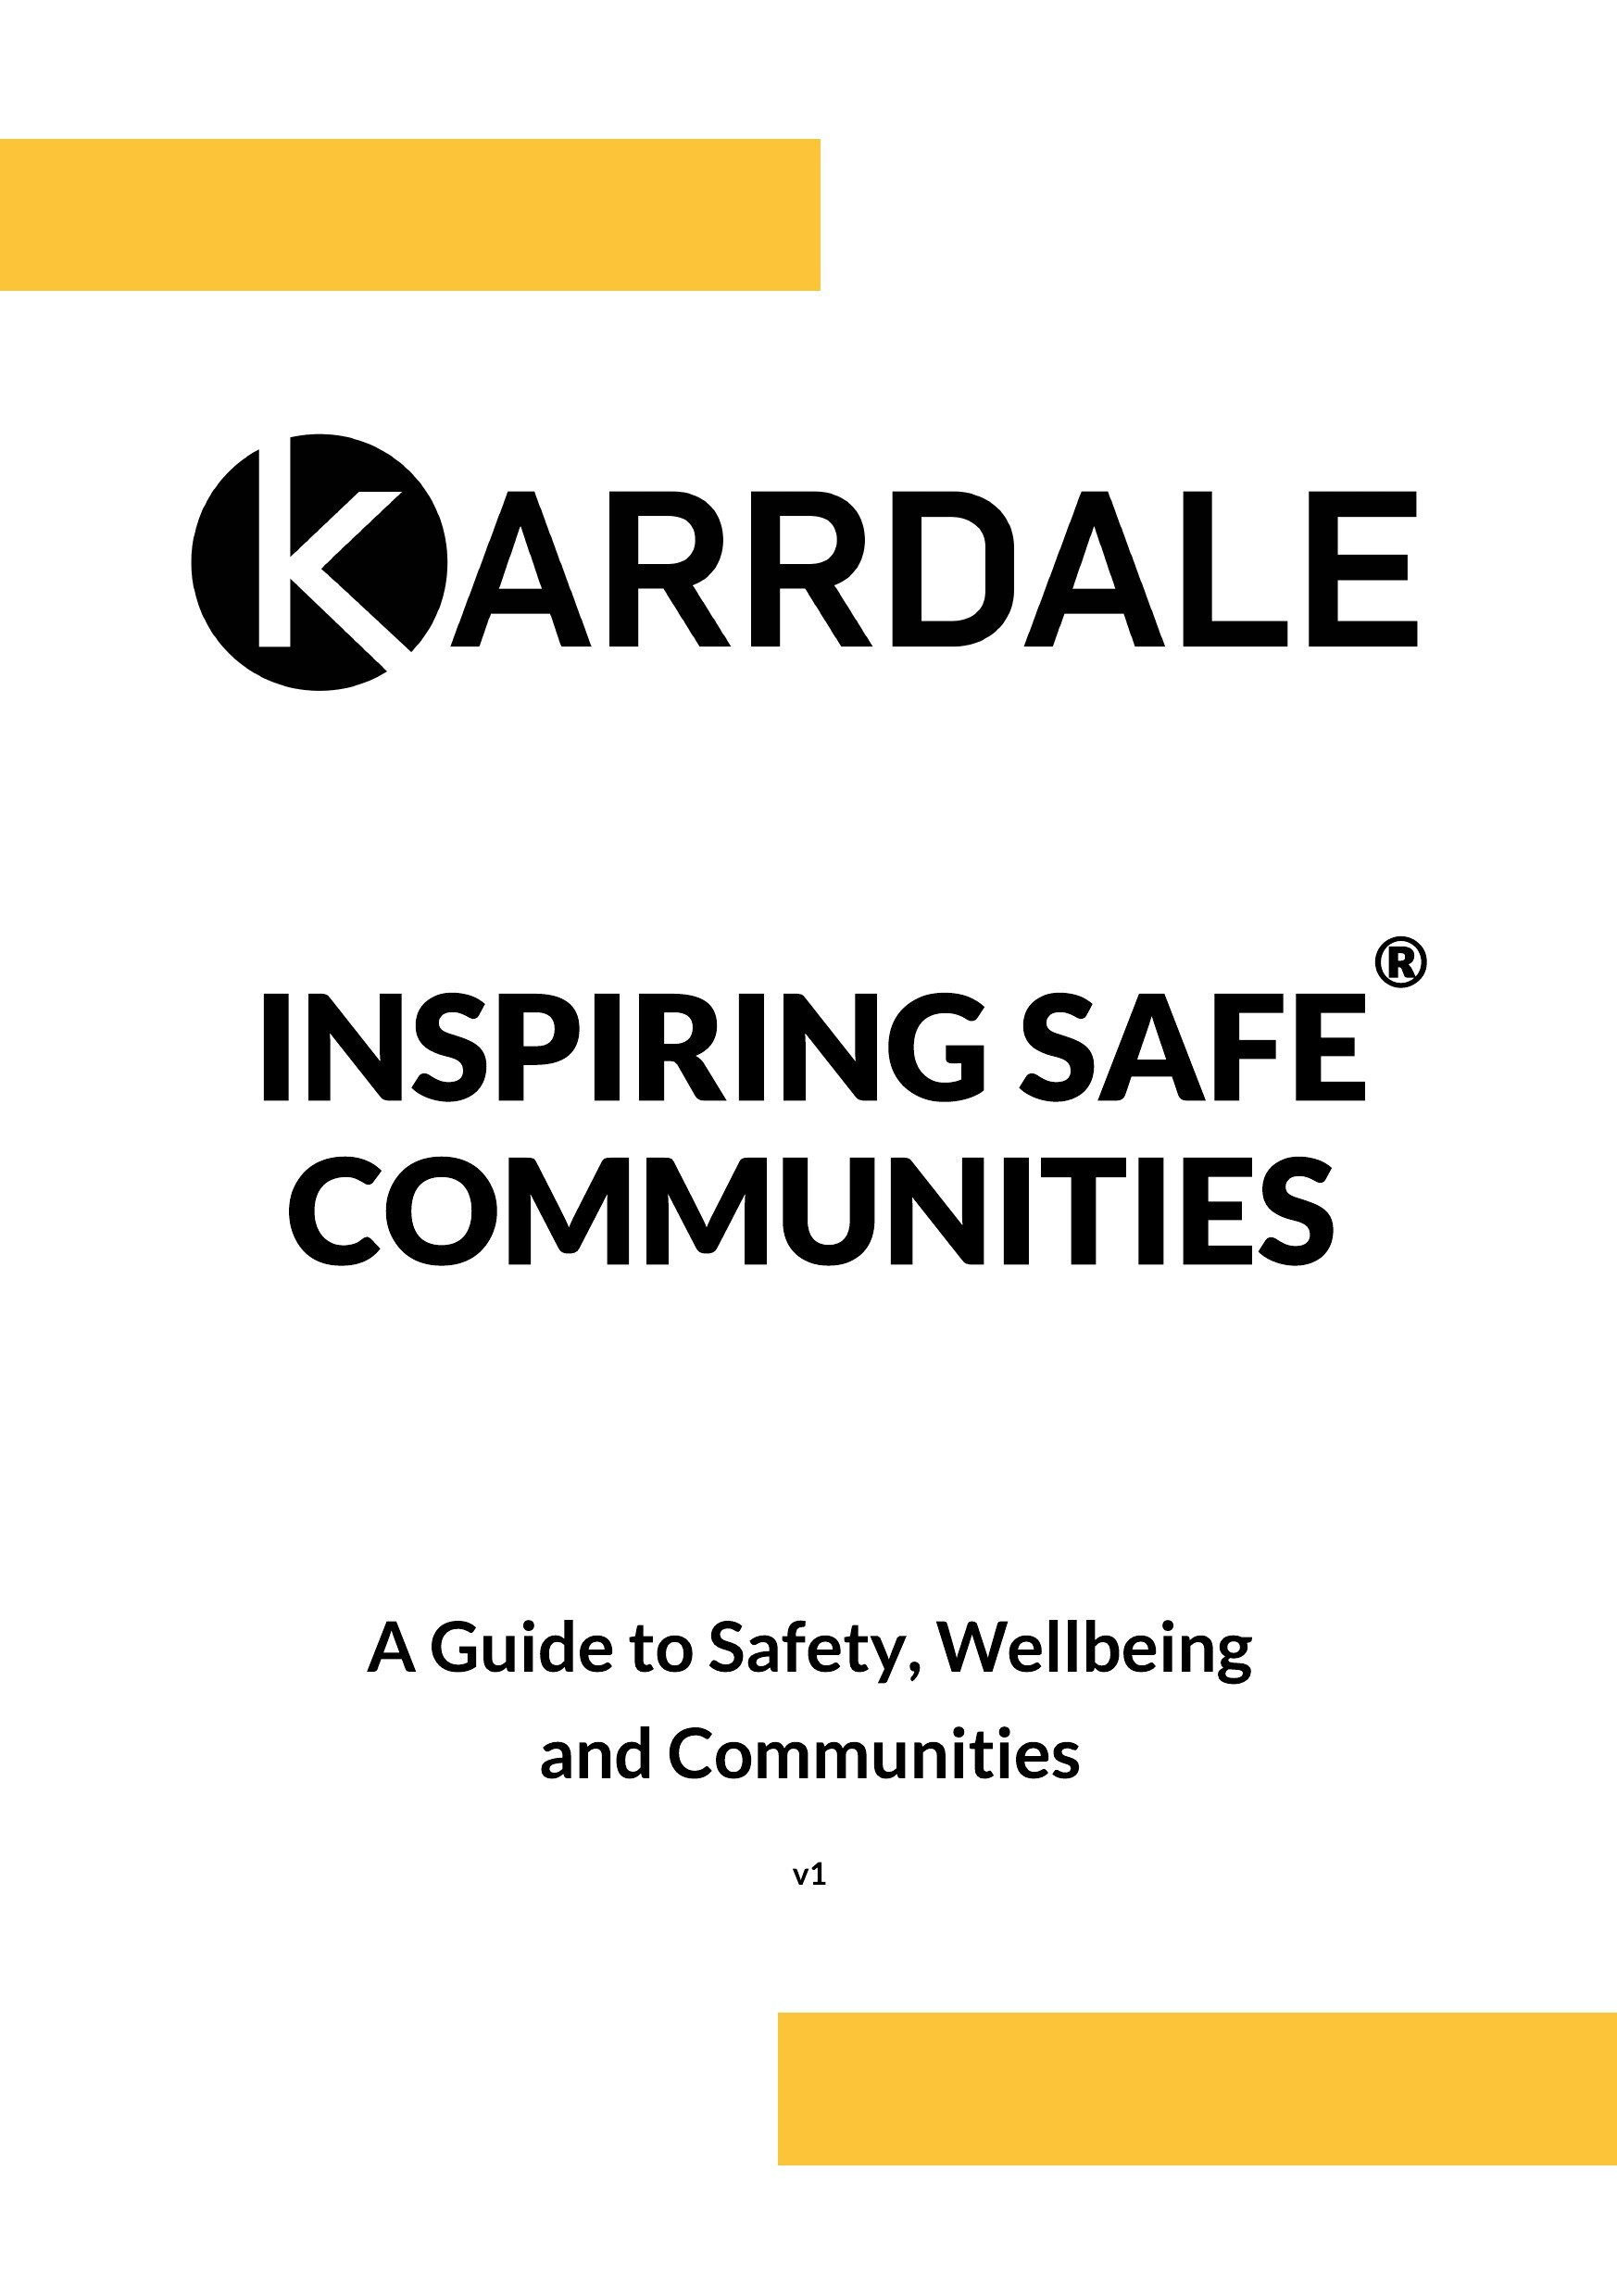 A Guide to Safety, Wellbeing and Communities - The workplace is currently experiencing a jam when it comes to safety & wellbeing, leaving many scratching their heads for an engaging way forward. The motivation to create positive environments of care is strong, but the lack of new ideas is forcing companies into regurgitating the same models, ones that reached the pinnacle of success a long time ago and the risk of these important topics becoming boring and less meaningful for the worker is drawing closer.Companies are very aware that safety compliance alone will never be the panacea of safety & wellbeing and that a safety or quality failing could fold their business at a rapid rate. A common need for survival, be this for the individual, family, team or business, is driving people at all levels within companies to look for new ways to engage and find a way forward. Leaders know there is an engagement jam, we hope this guide can assist with unblocking it!We hope that this short and concise guide helps you achieve your goals.*ON SALE*£̶2̶5̶.̶0̶0̶ £10.00